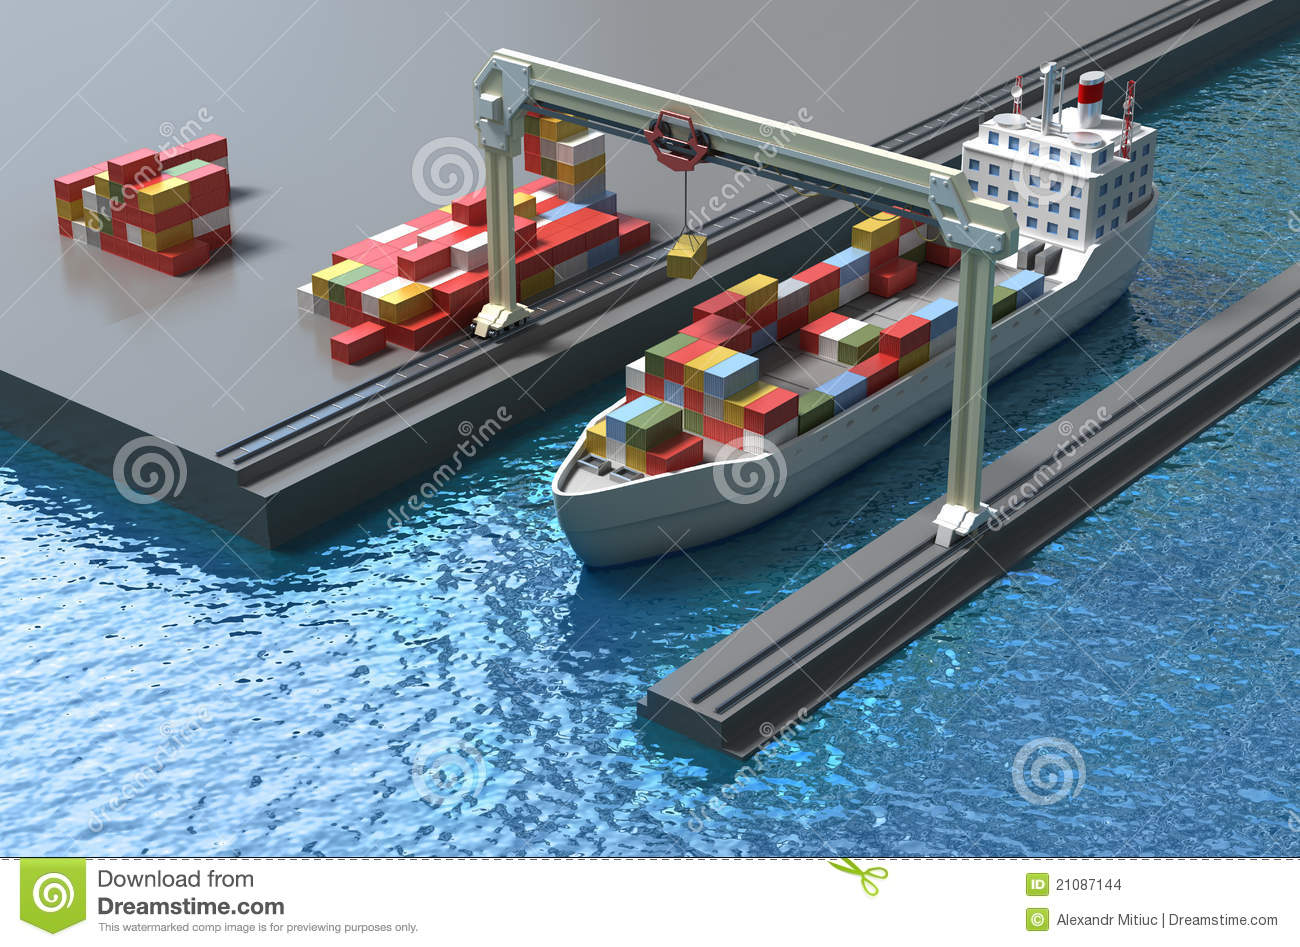 Crane Lifting Cargo Container And Loading The Ship Stock Images - Image: 21087144